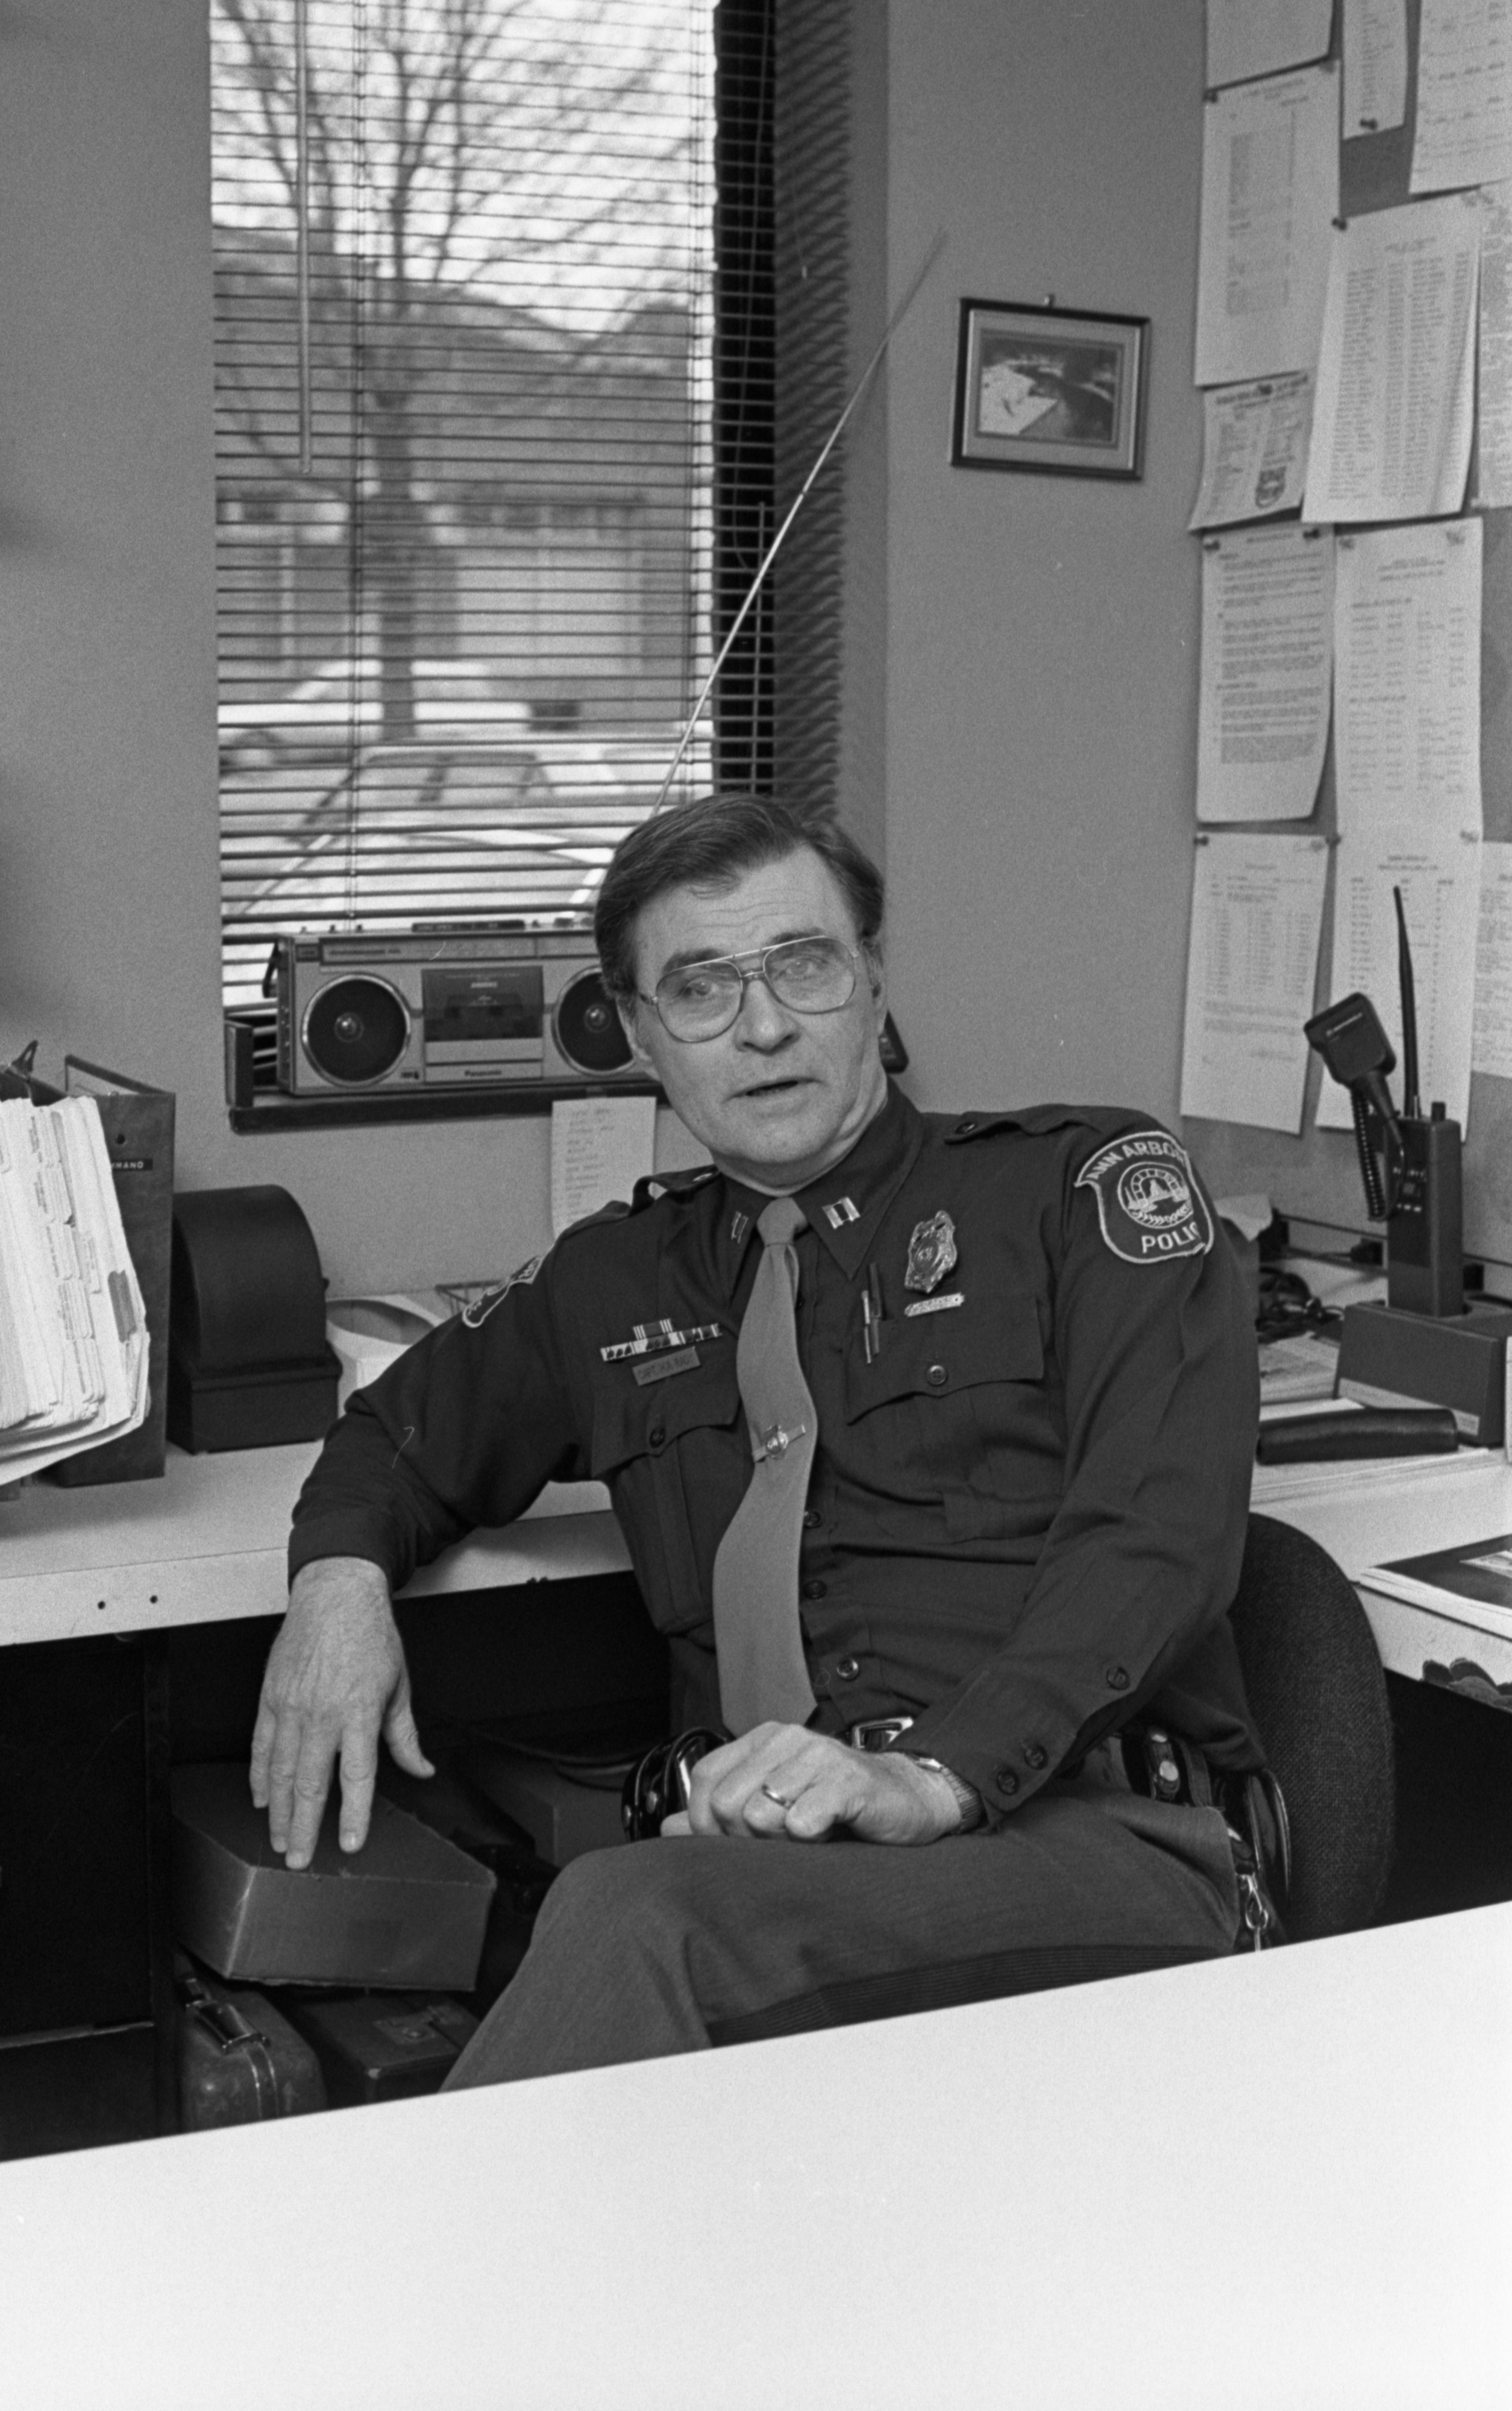 Ann Arbor Police Captain Harold Rady Set To Retire After 25 Years, April 1988 image